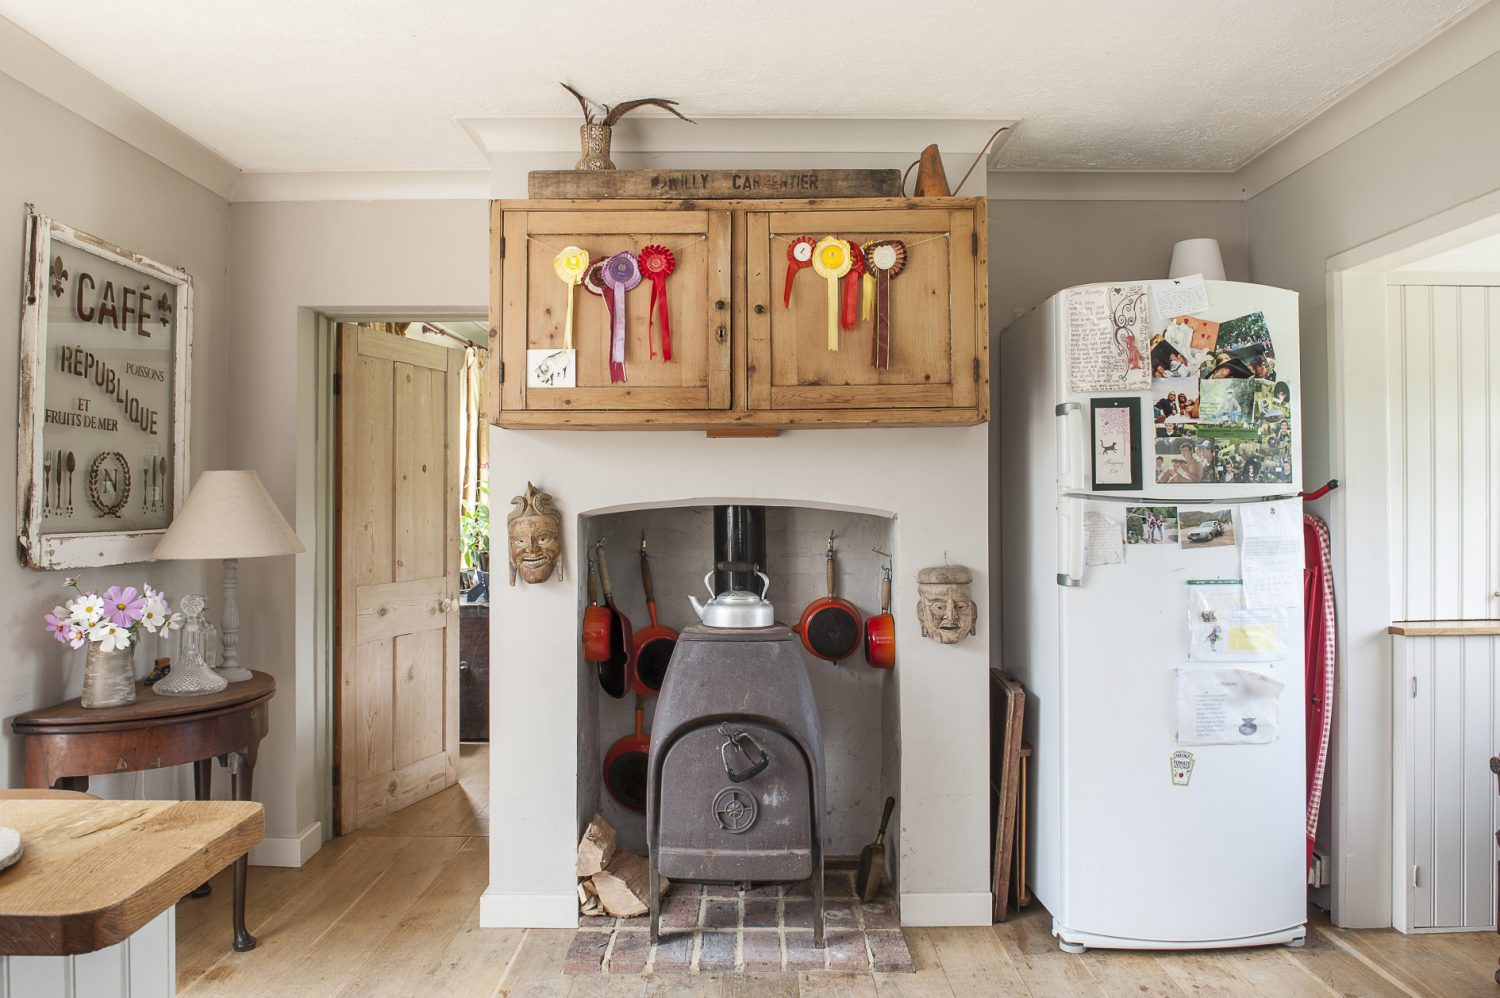 Daughter Liberty's riding rosettes are proudly on display in the kitchen